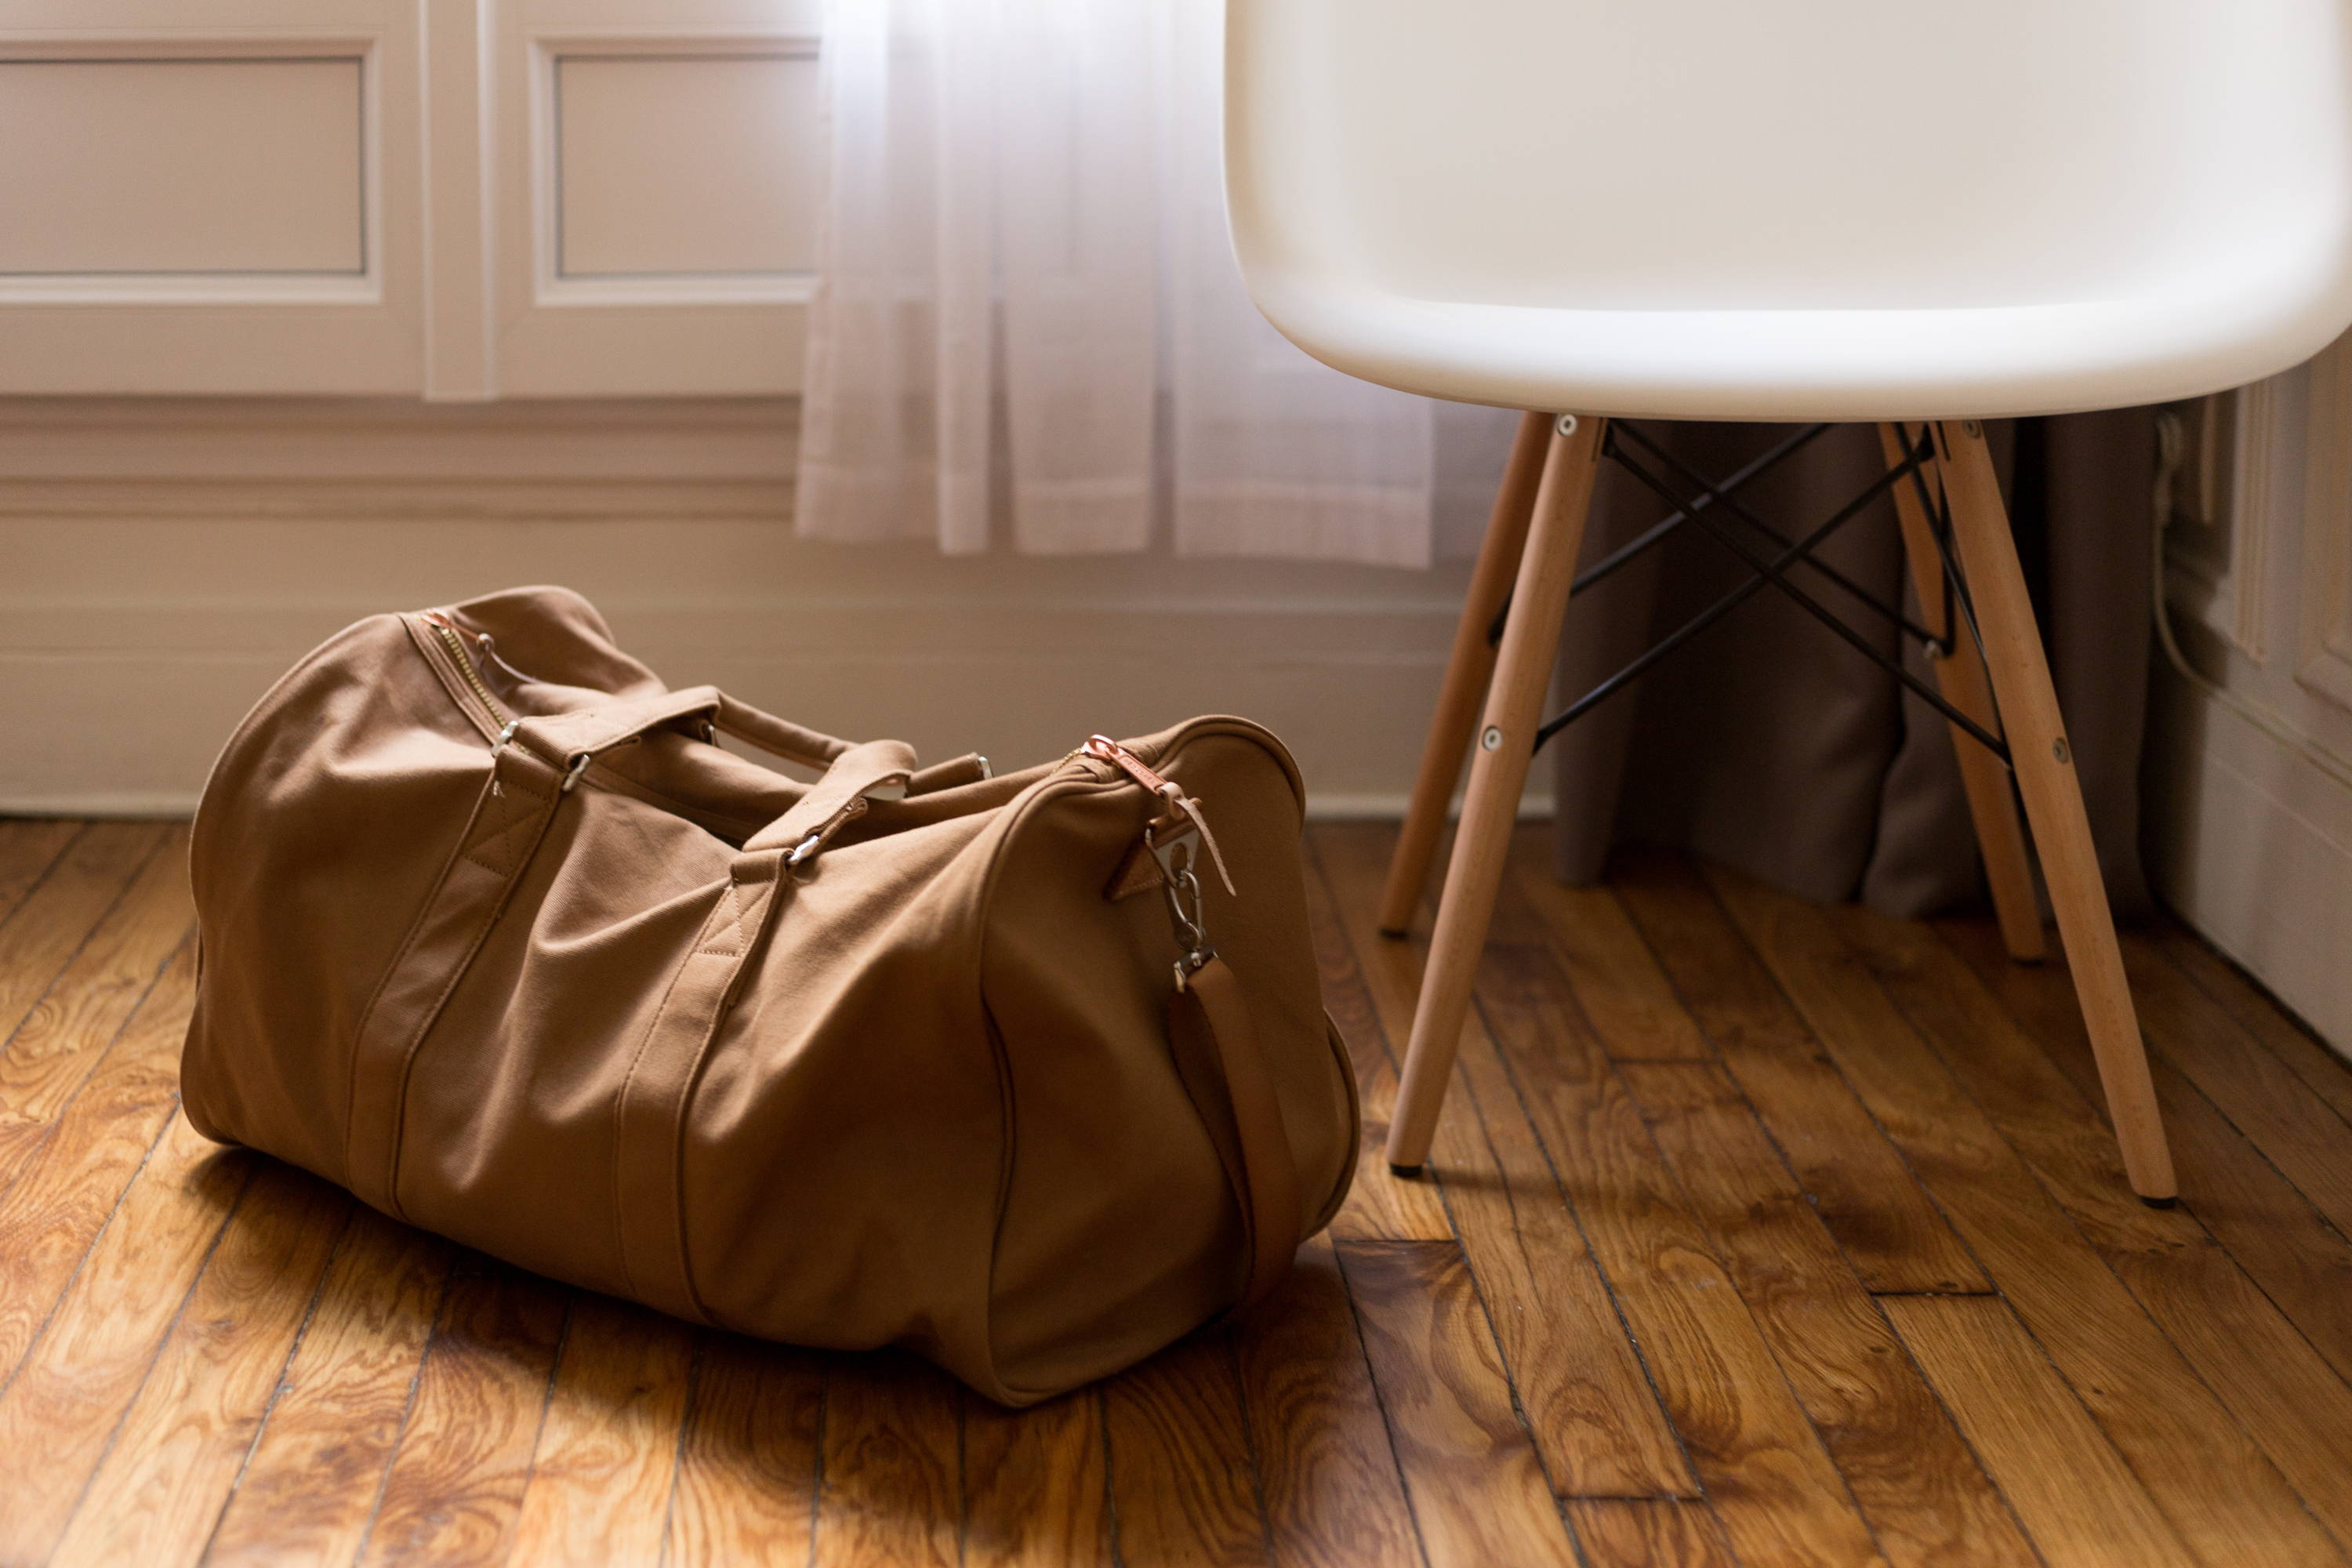 How To Pick The Best Duffel Bag For Your Trip